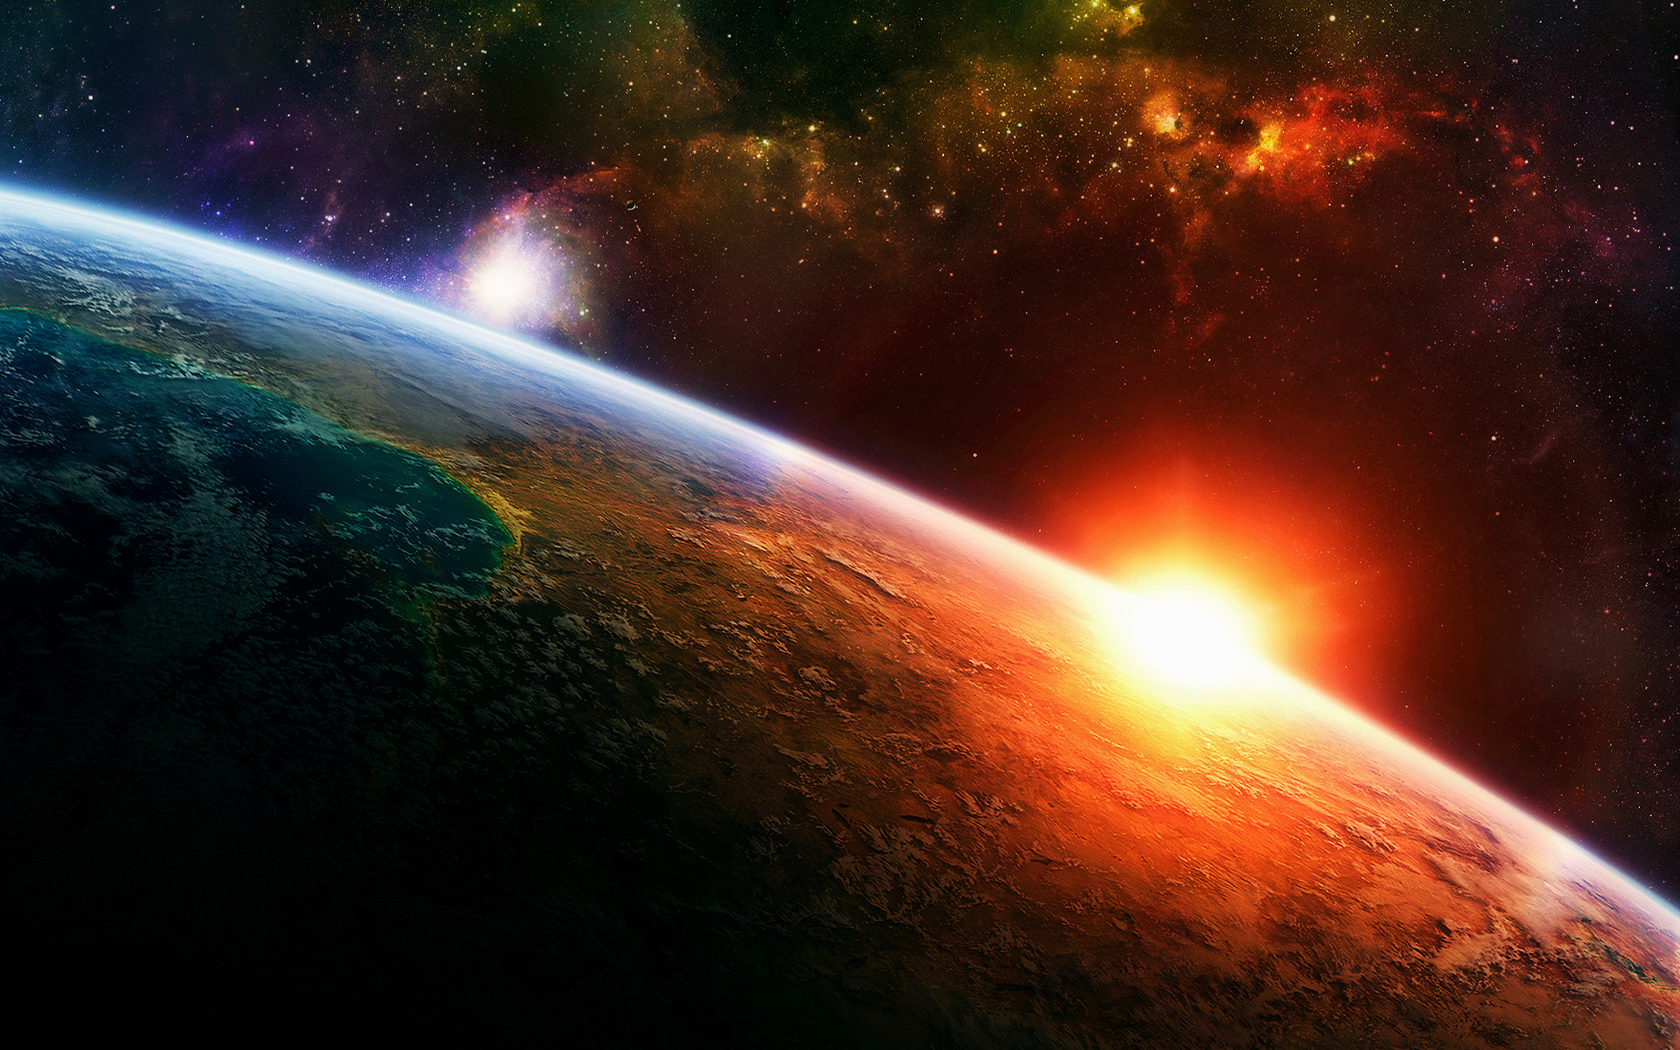 Marvelous Planet Earth and Space Wallpapers - Hongkiat